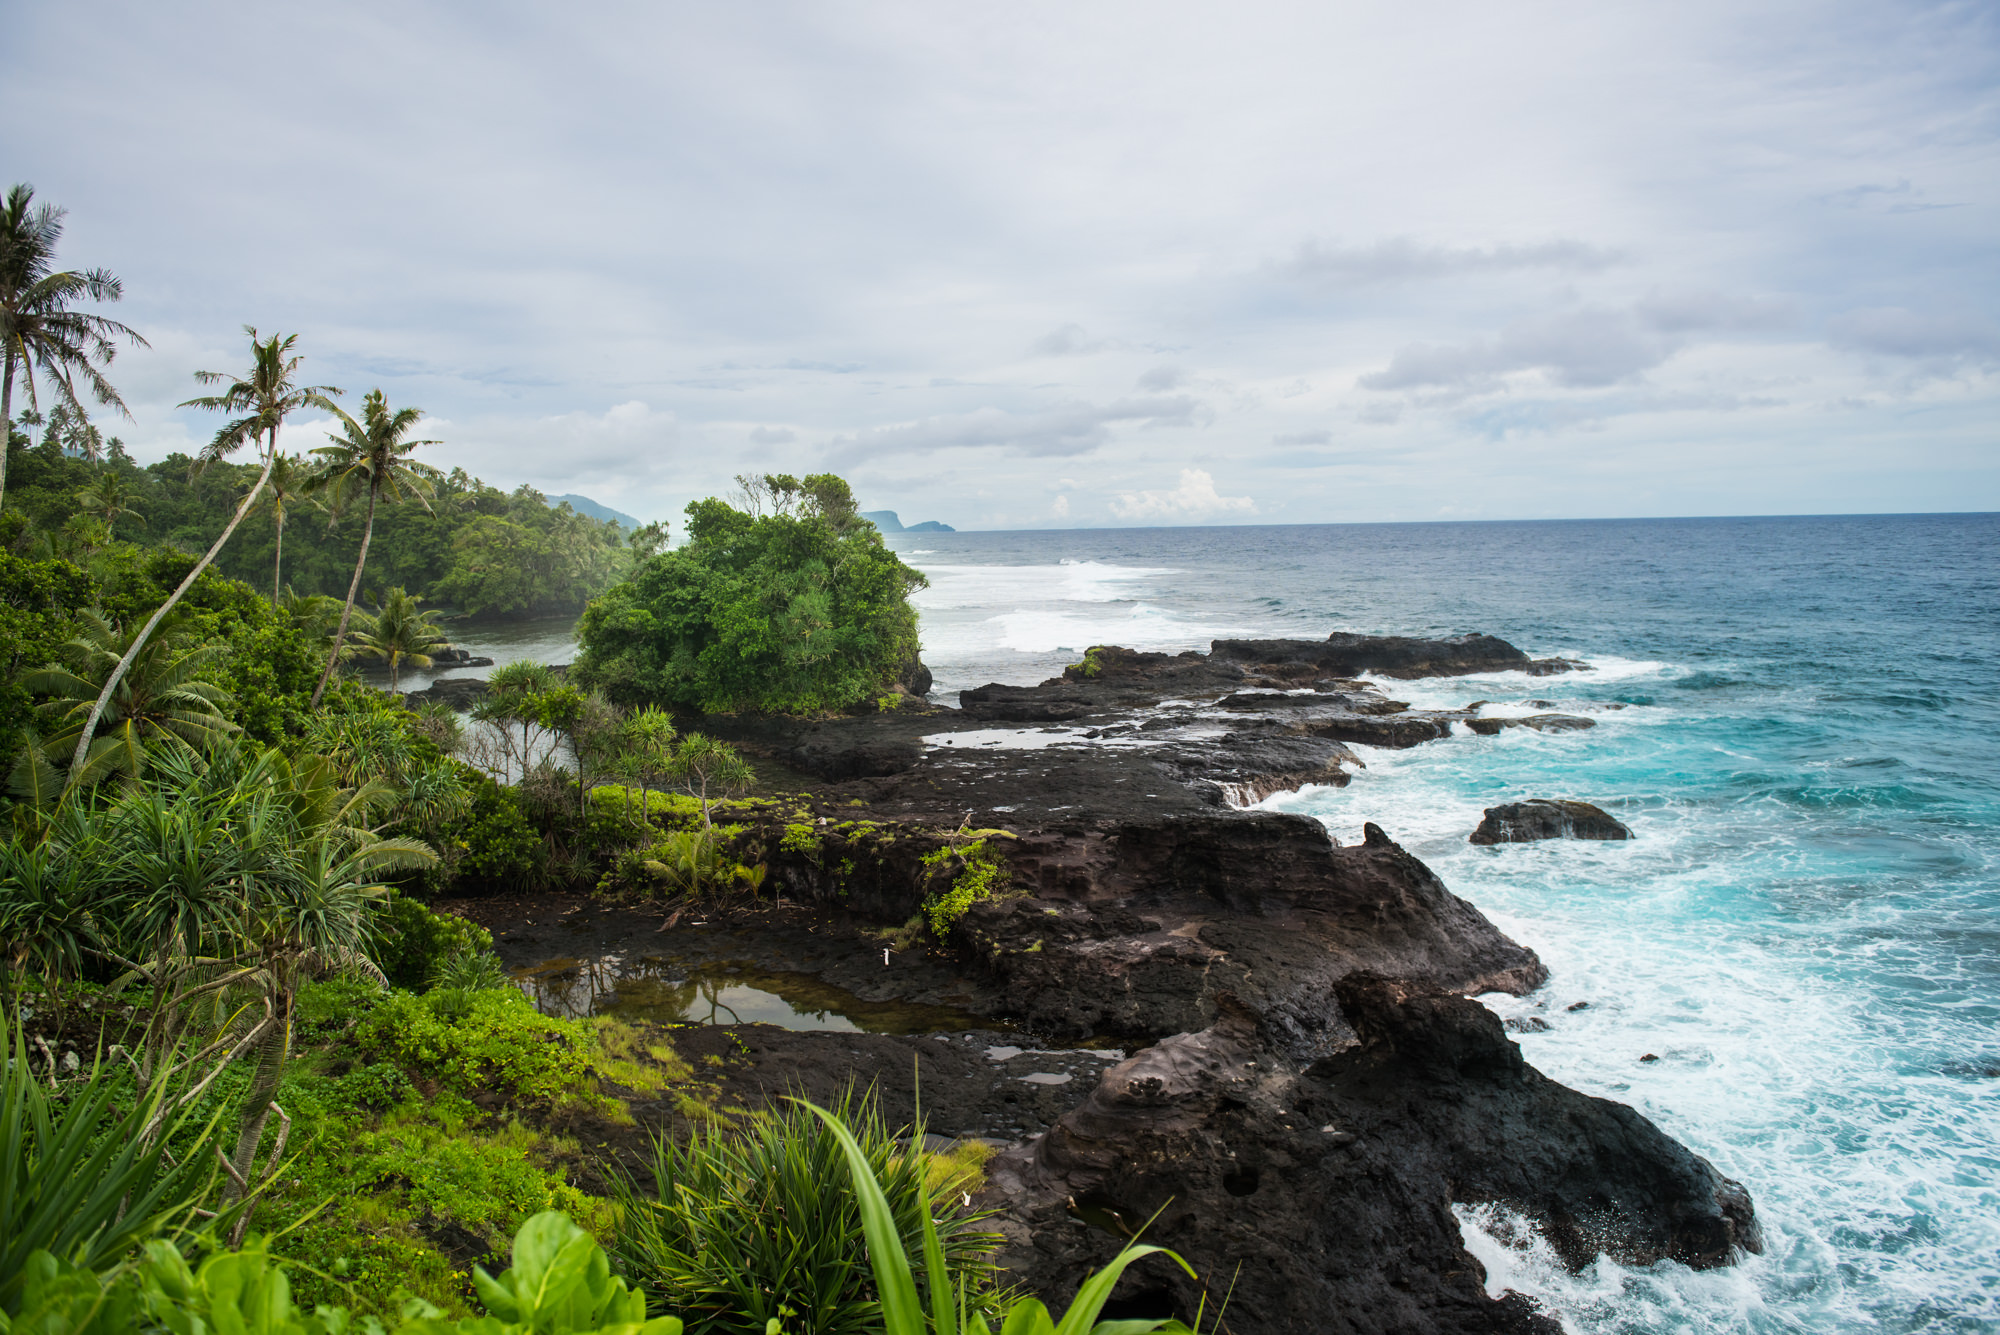 A beautiful tropical coastline view in Samoa